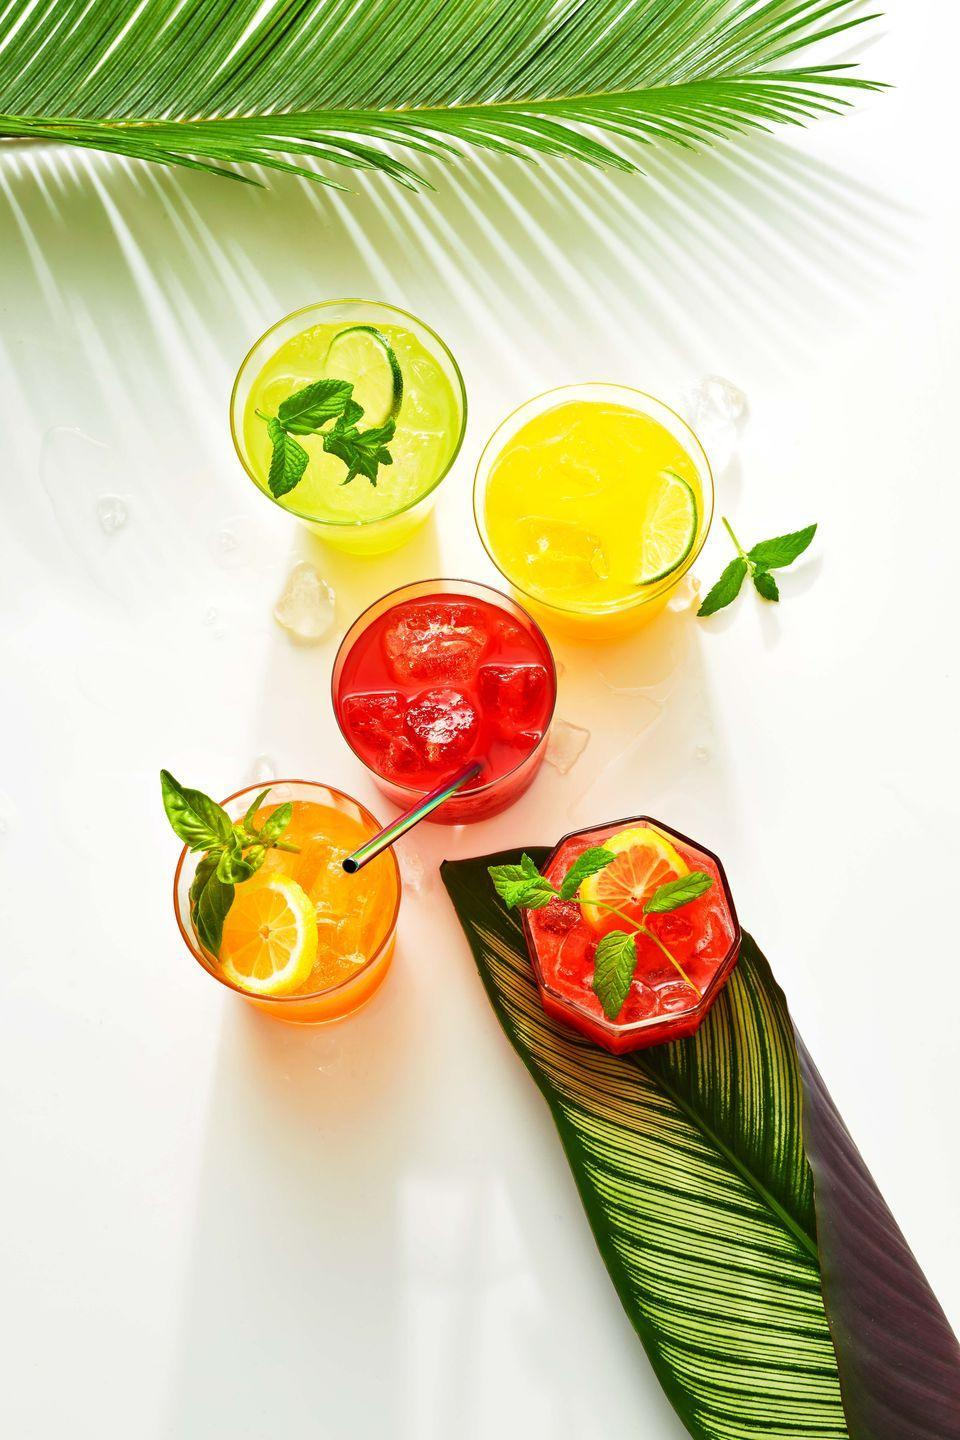 """<p>This thirst-quenching Mexican drink is made from a combo of fruit blended with lime juice, a sweetener and water and served over ice. Pair it with an easy <a href=""""https://www.goodhousekeeping.com/food-recipes/easy/g2352/quick-summer-dinner-recipes/"""" rel=""""nofollow noopener"""" target=""""_blank"""" data-ylk=""""slk:summer dinner"""" class=""""link rapid-noclick-resp"""">summer dinner</a> to stay cool!</p><p><em><a href=""""https://www.goodhousekeeping.com/food-recipes/a36686608/agua-fresca-recipe/"""" rel=""""nofollow noopener"""" target=""""_blank"""" data-ylk=""""slk:Get the recipe for Agua Fresca »"""" class=""""link rapid-noclick-resp"""">Get the recipe for Agua Fresca »</a></em></p><p><strong>RELATED: </strong><a href=""""https://www.goodhousekeeping.com/food-recipes/cooking/a36109179/grilling-for-beginners/"""" rel=""""nofollow noopener"""" target=""""_blank"""" data-ylk=""""slk:Ultimate Guide to Grilling"""" class=""""link rapid-noclick-resp"""">Ultimate Guide to Grilling</a></p>"""